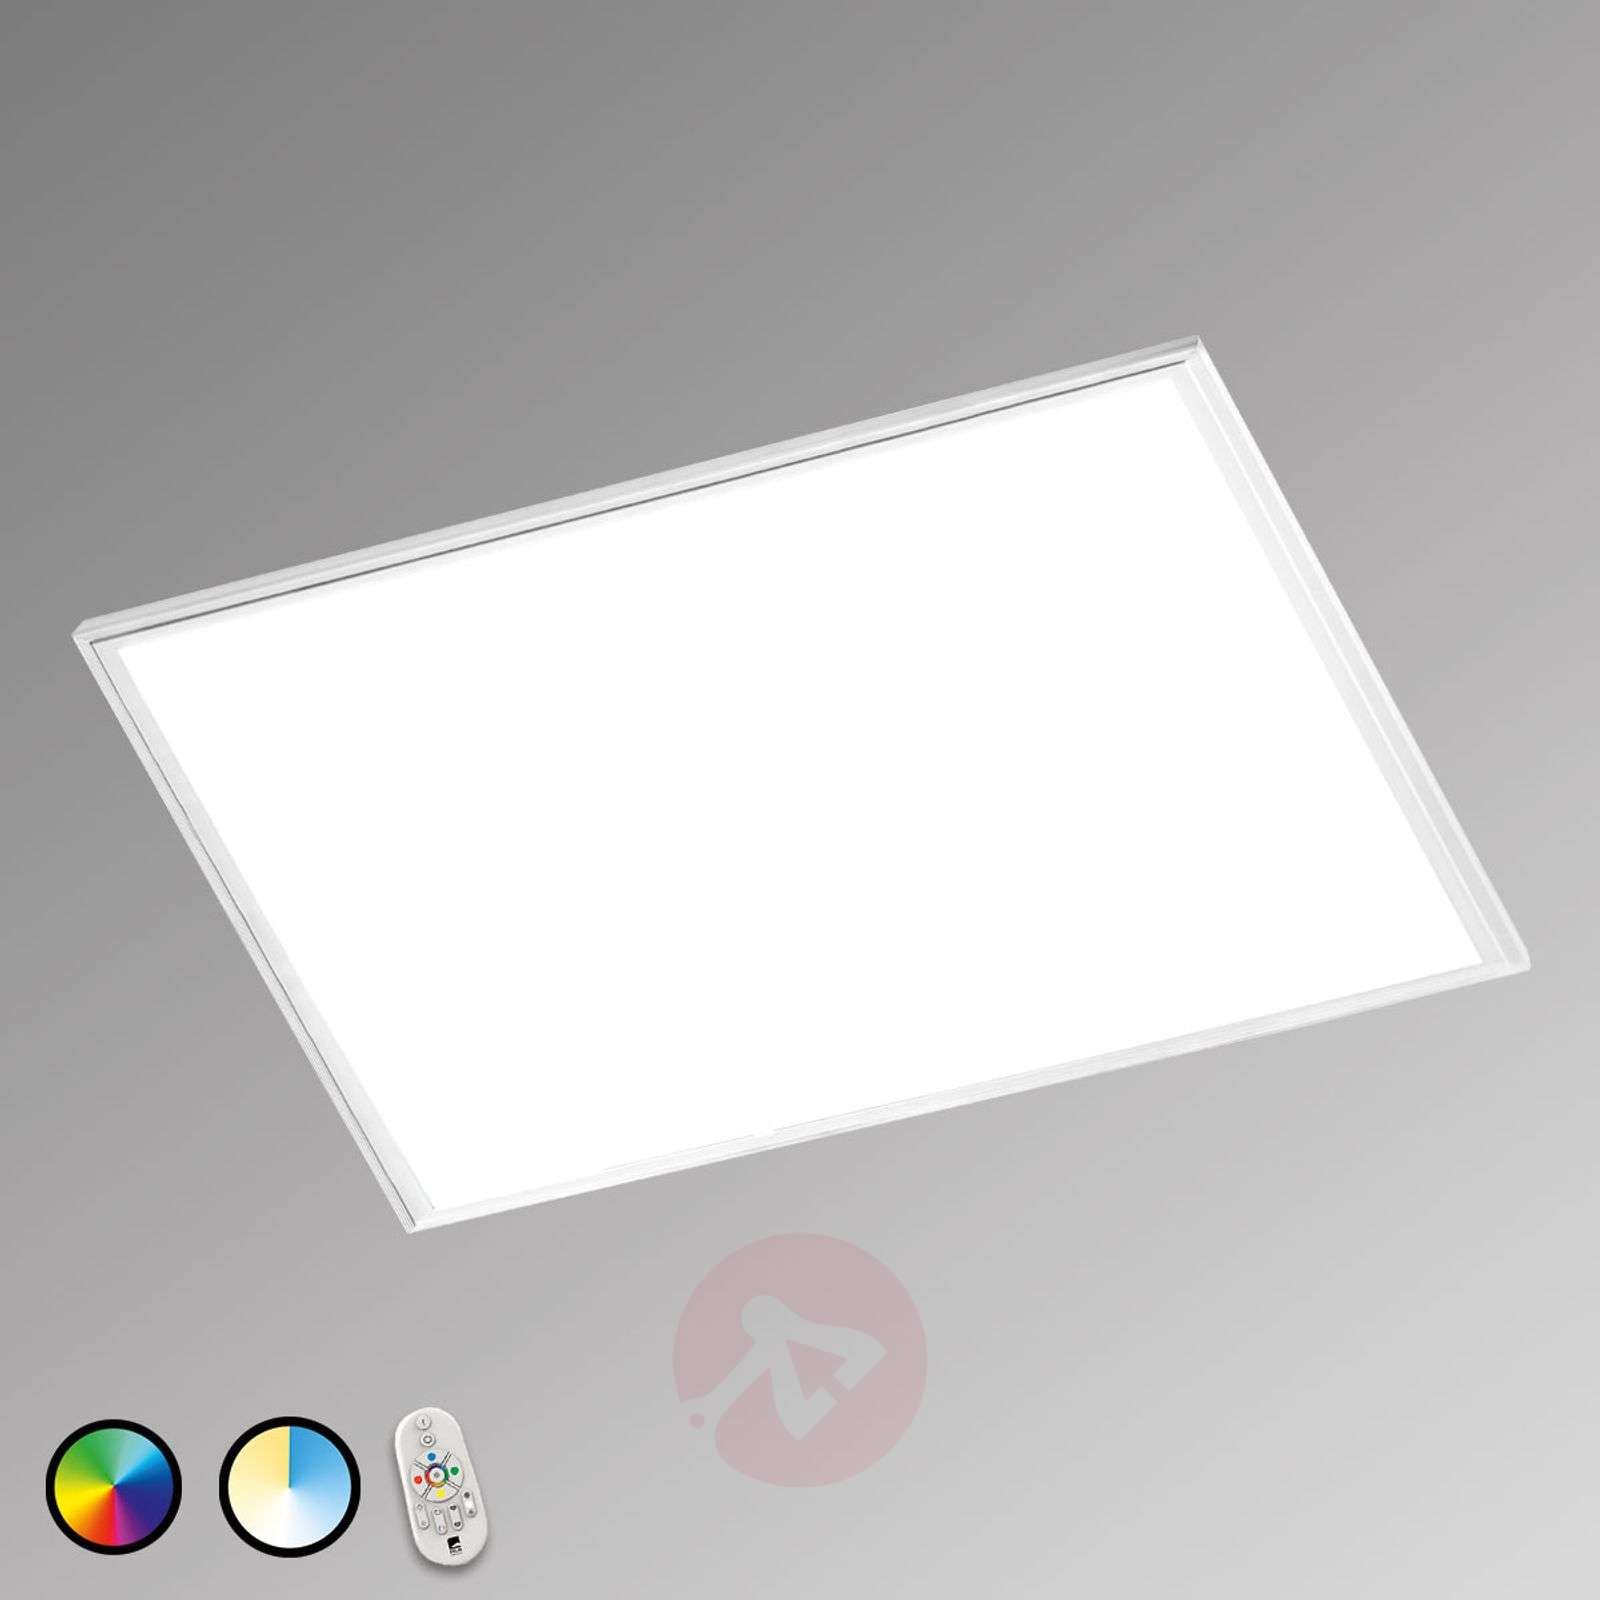 EGLO connect Salobrena-C LED pan., 59,5 x 59,5 cm-3032051-01